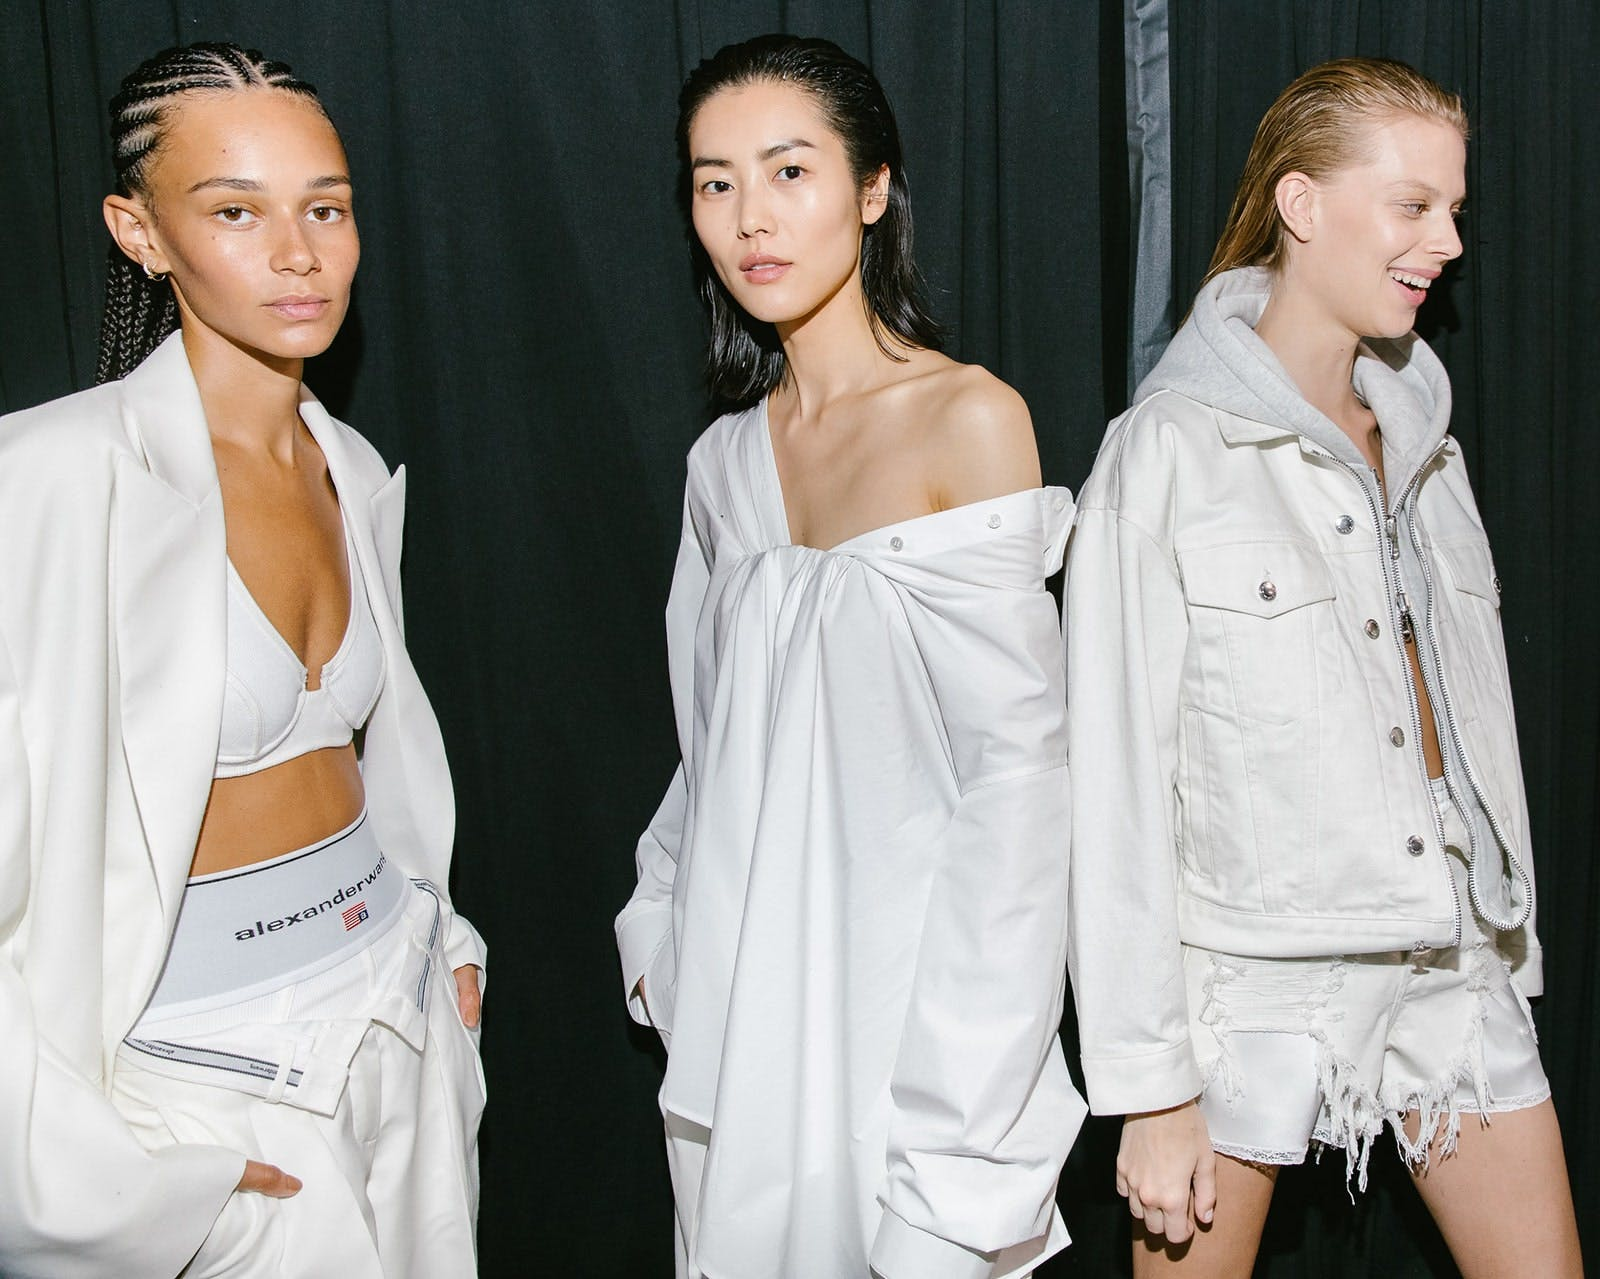 Models in Relaxed Oversized Blazer in White Tucked Bust Oxford Blouse in White and Game Hybrid Jacket